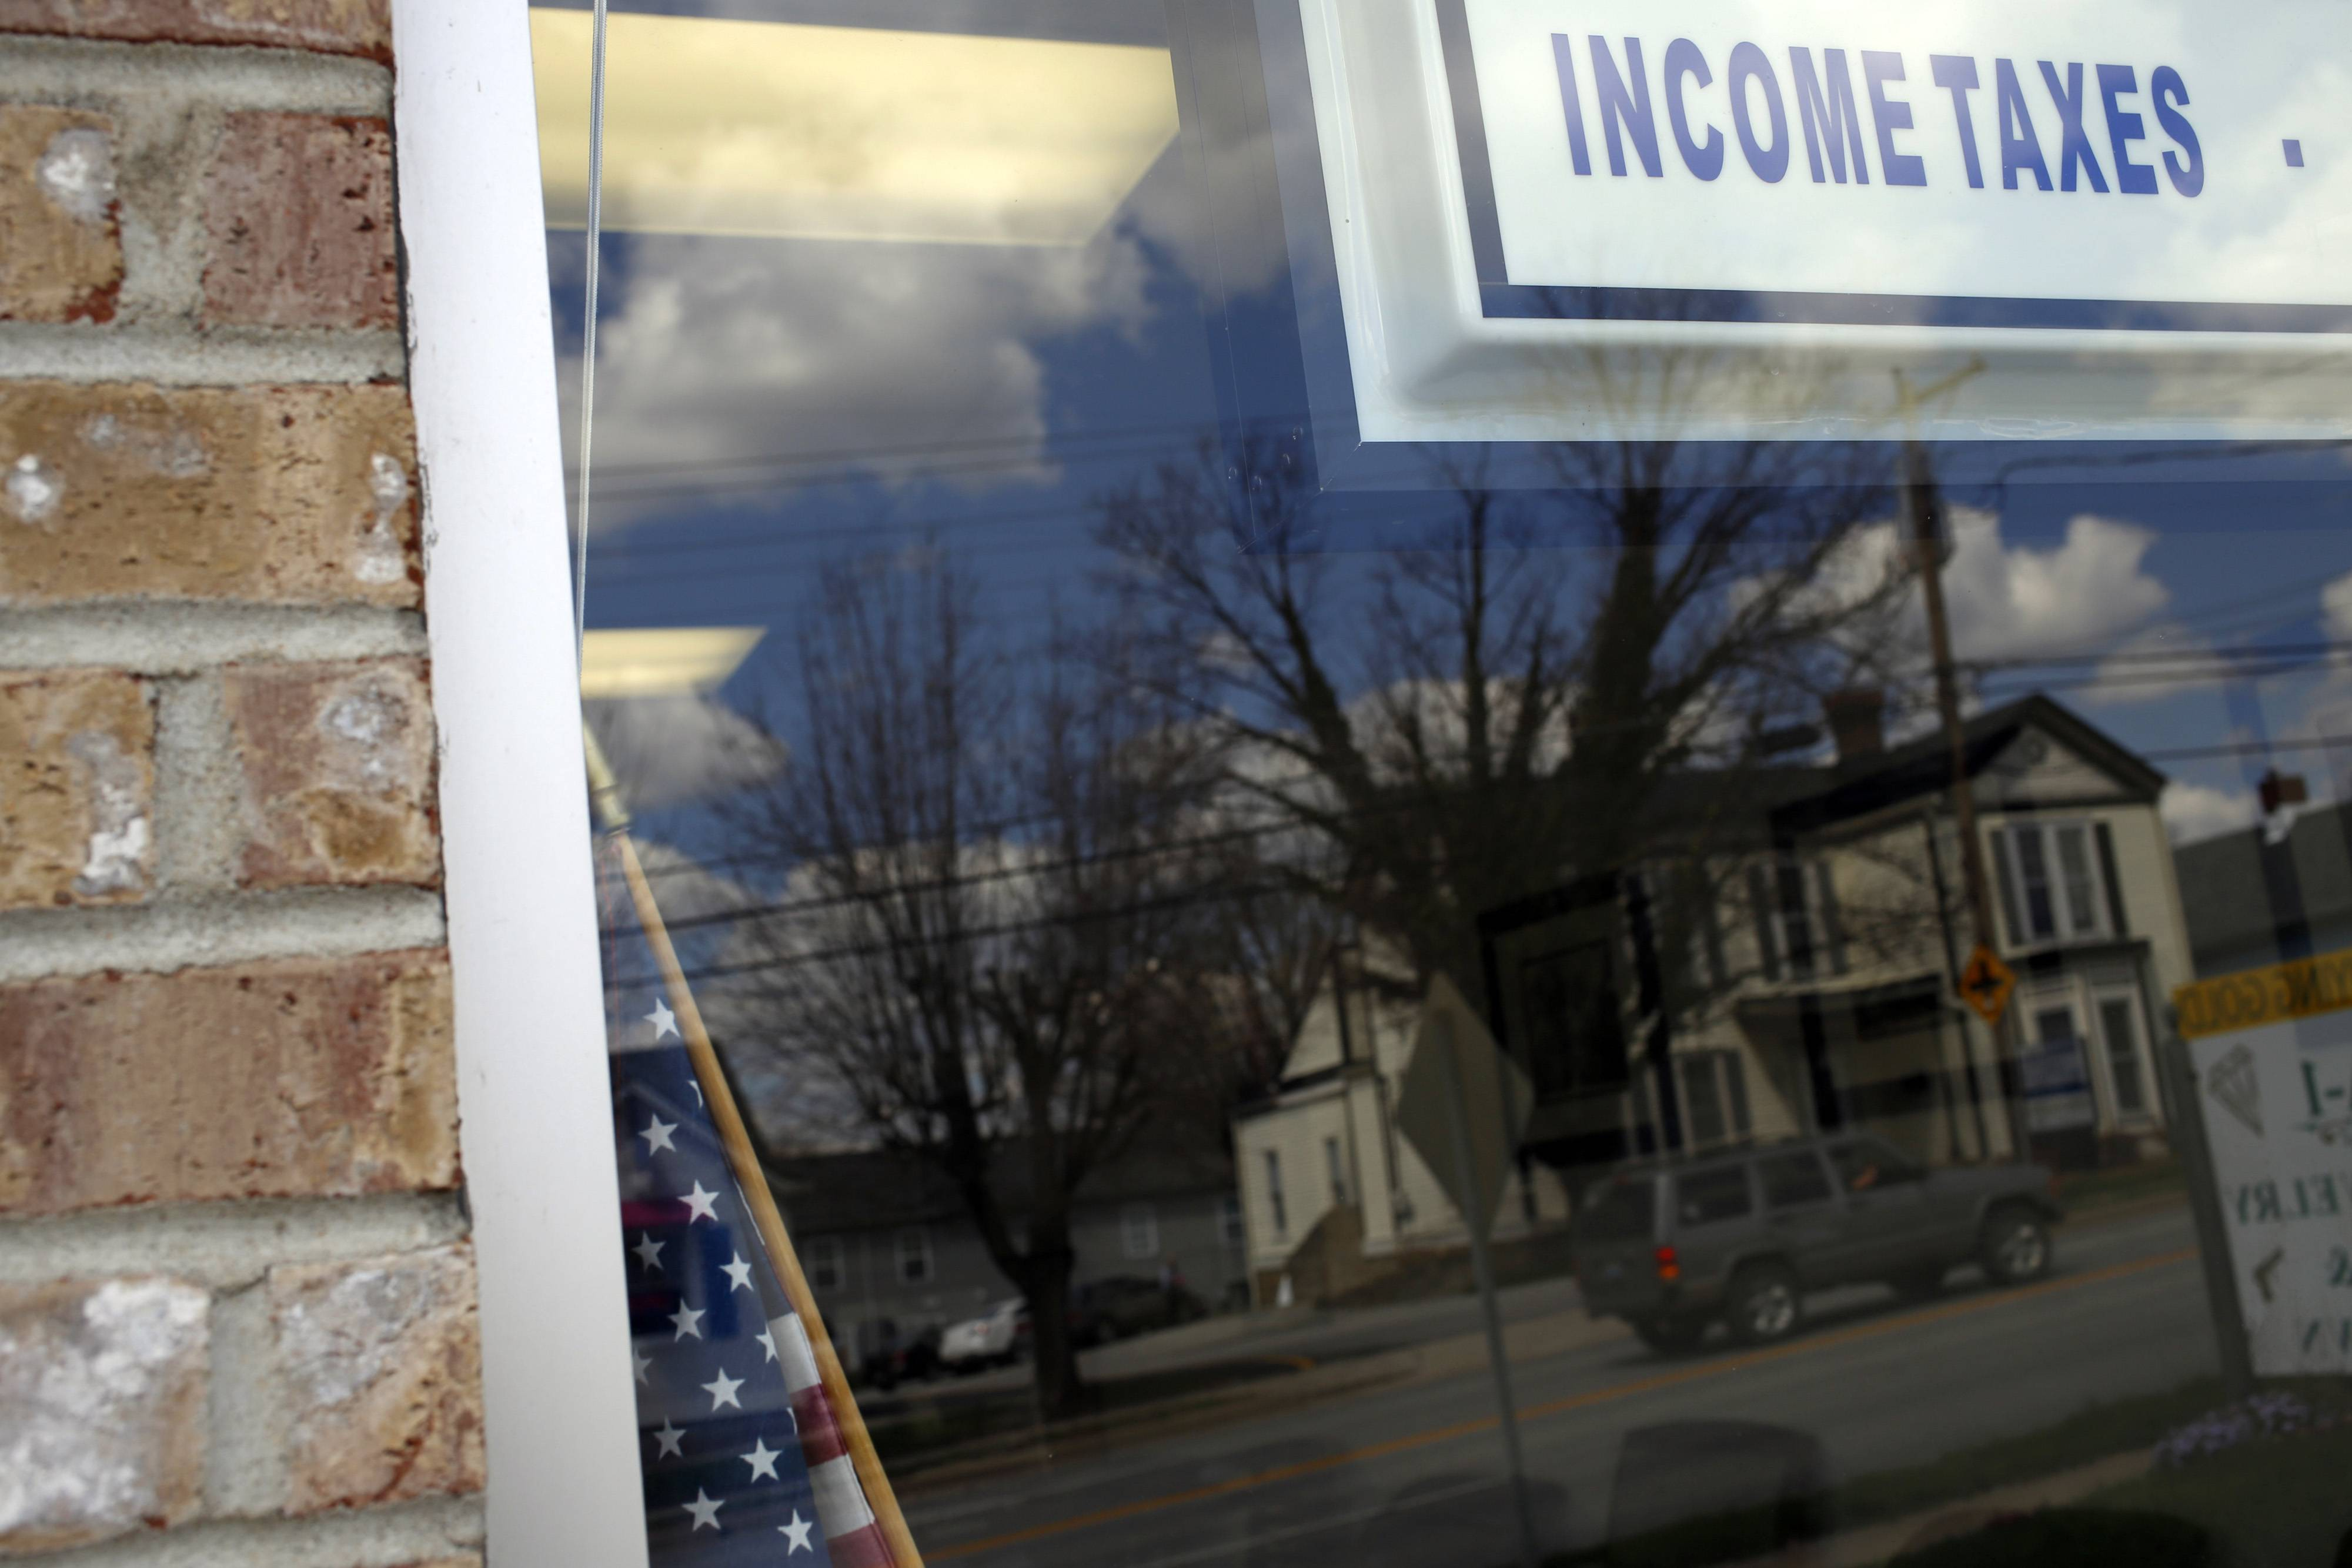 An income tax sign hangs in the window of Tax Pros USA in La Grange, Ky. The deadline for filing federal income tax returns to the Internal Revenue Service is Tuesday.